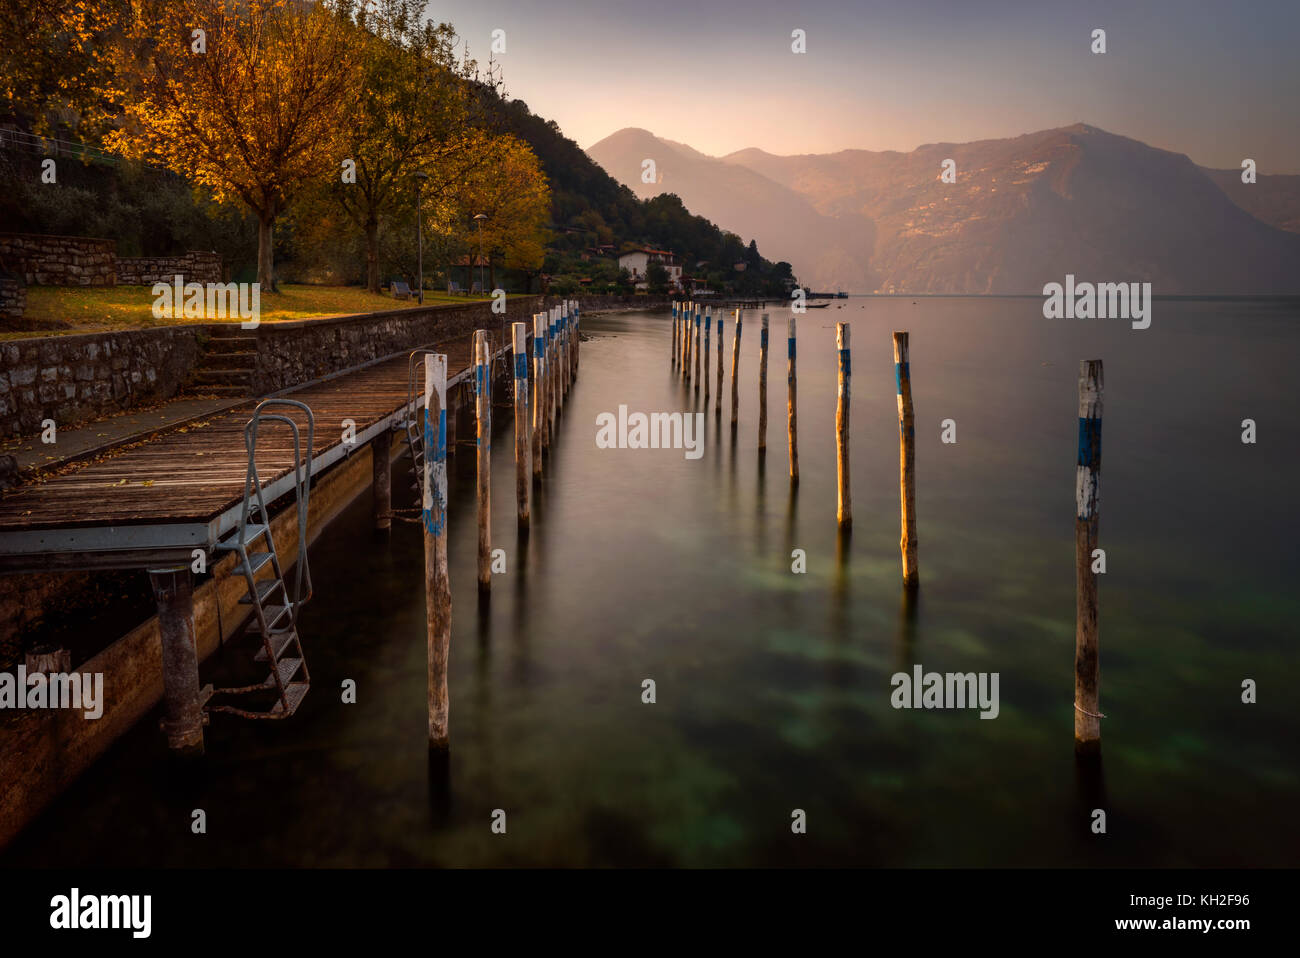 Little harbour on Iseo Lake with mountains in background, Italy - Stock Image